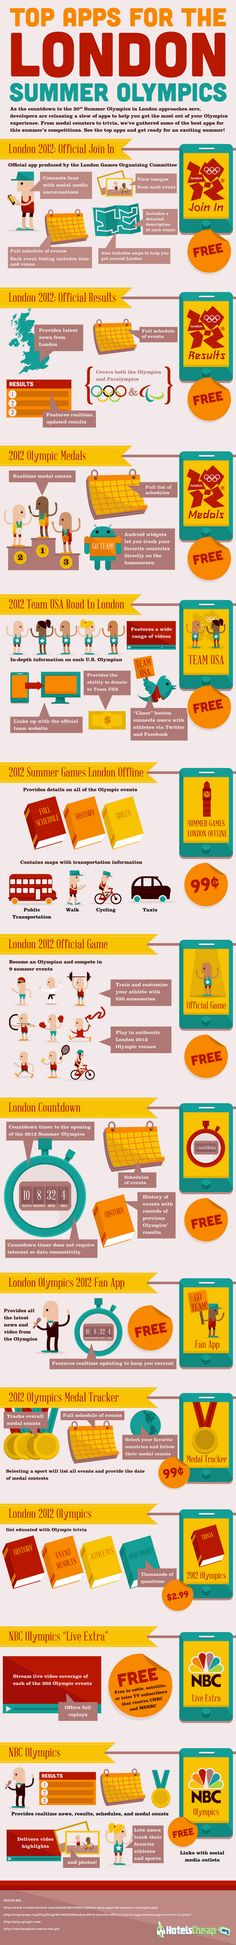 Top Apps for the London Summer #Olympics #infographic // Las mejores Apps de los JJOO de Londres #infografia (repinned by @ricardollera)